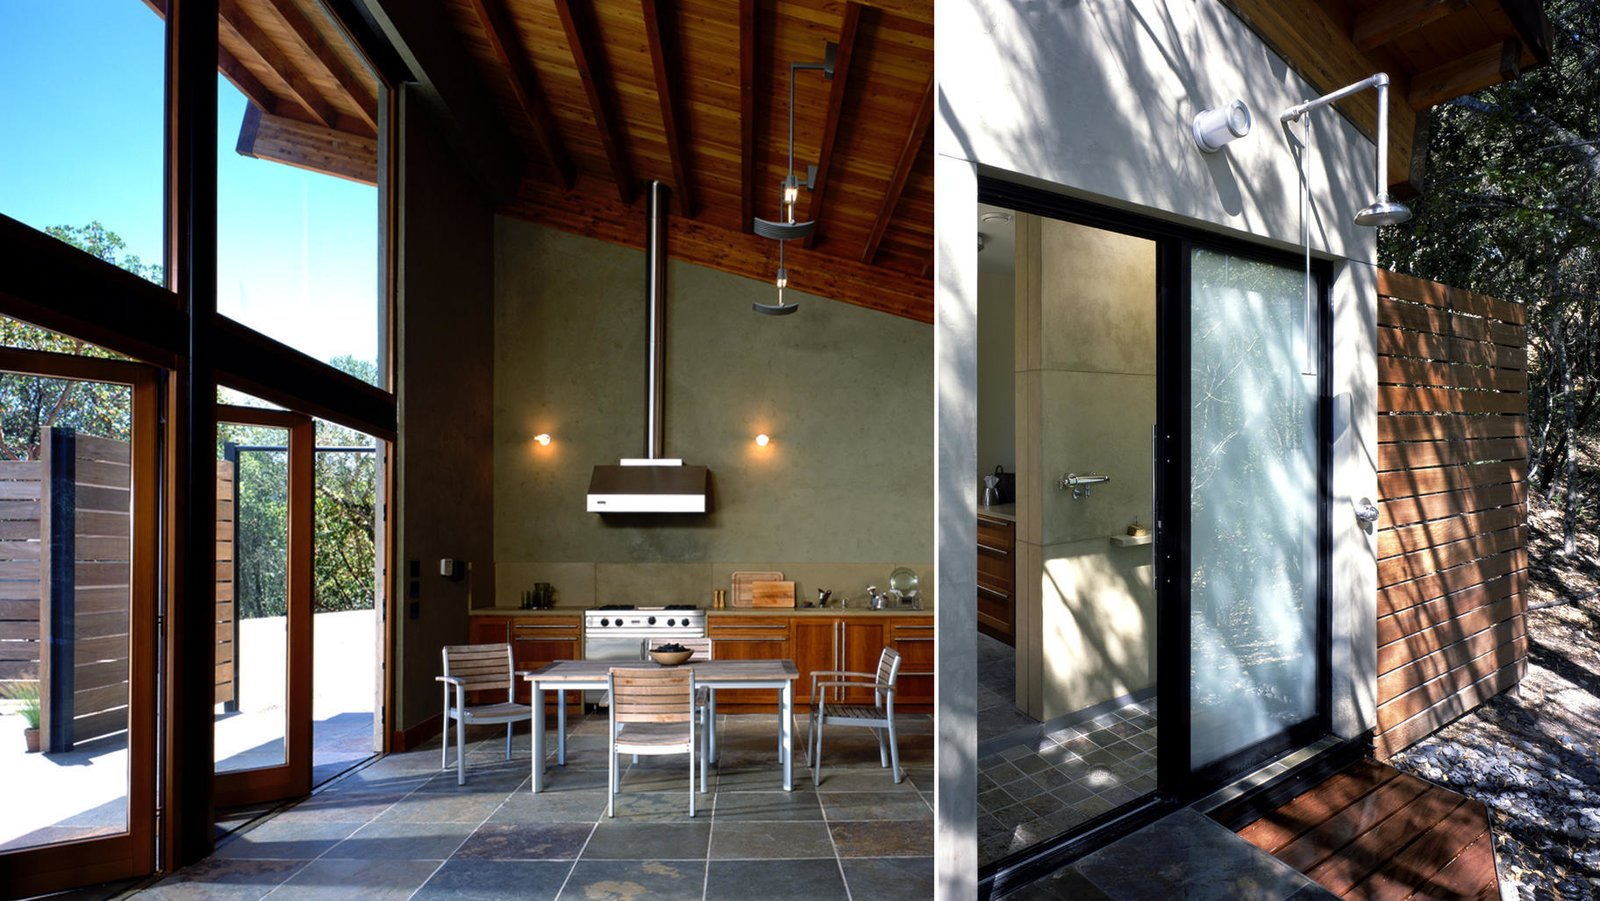 #poolhouse #calistoga #interior #exterior #kitchen #outdoorshower #smallspaces #cantileveredroof #cantilevered #roof  Barnes Pool House